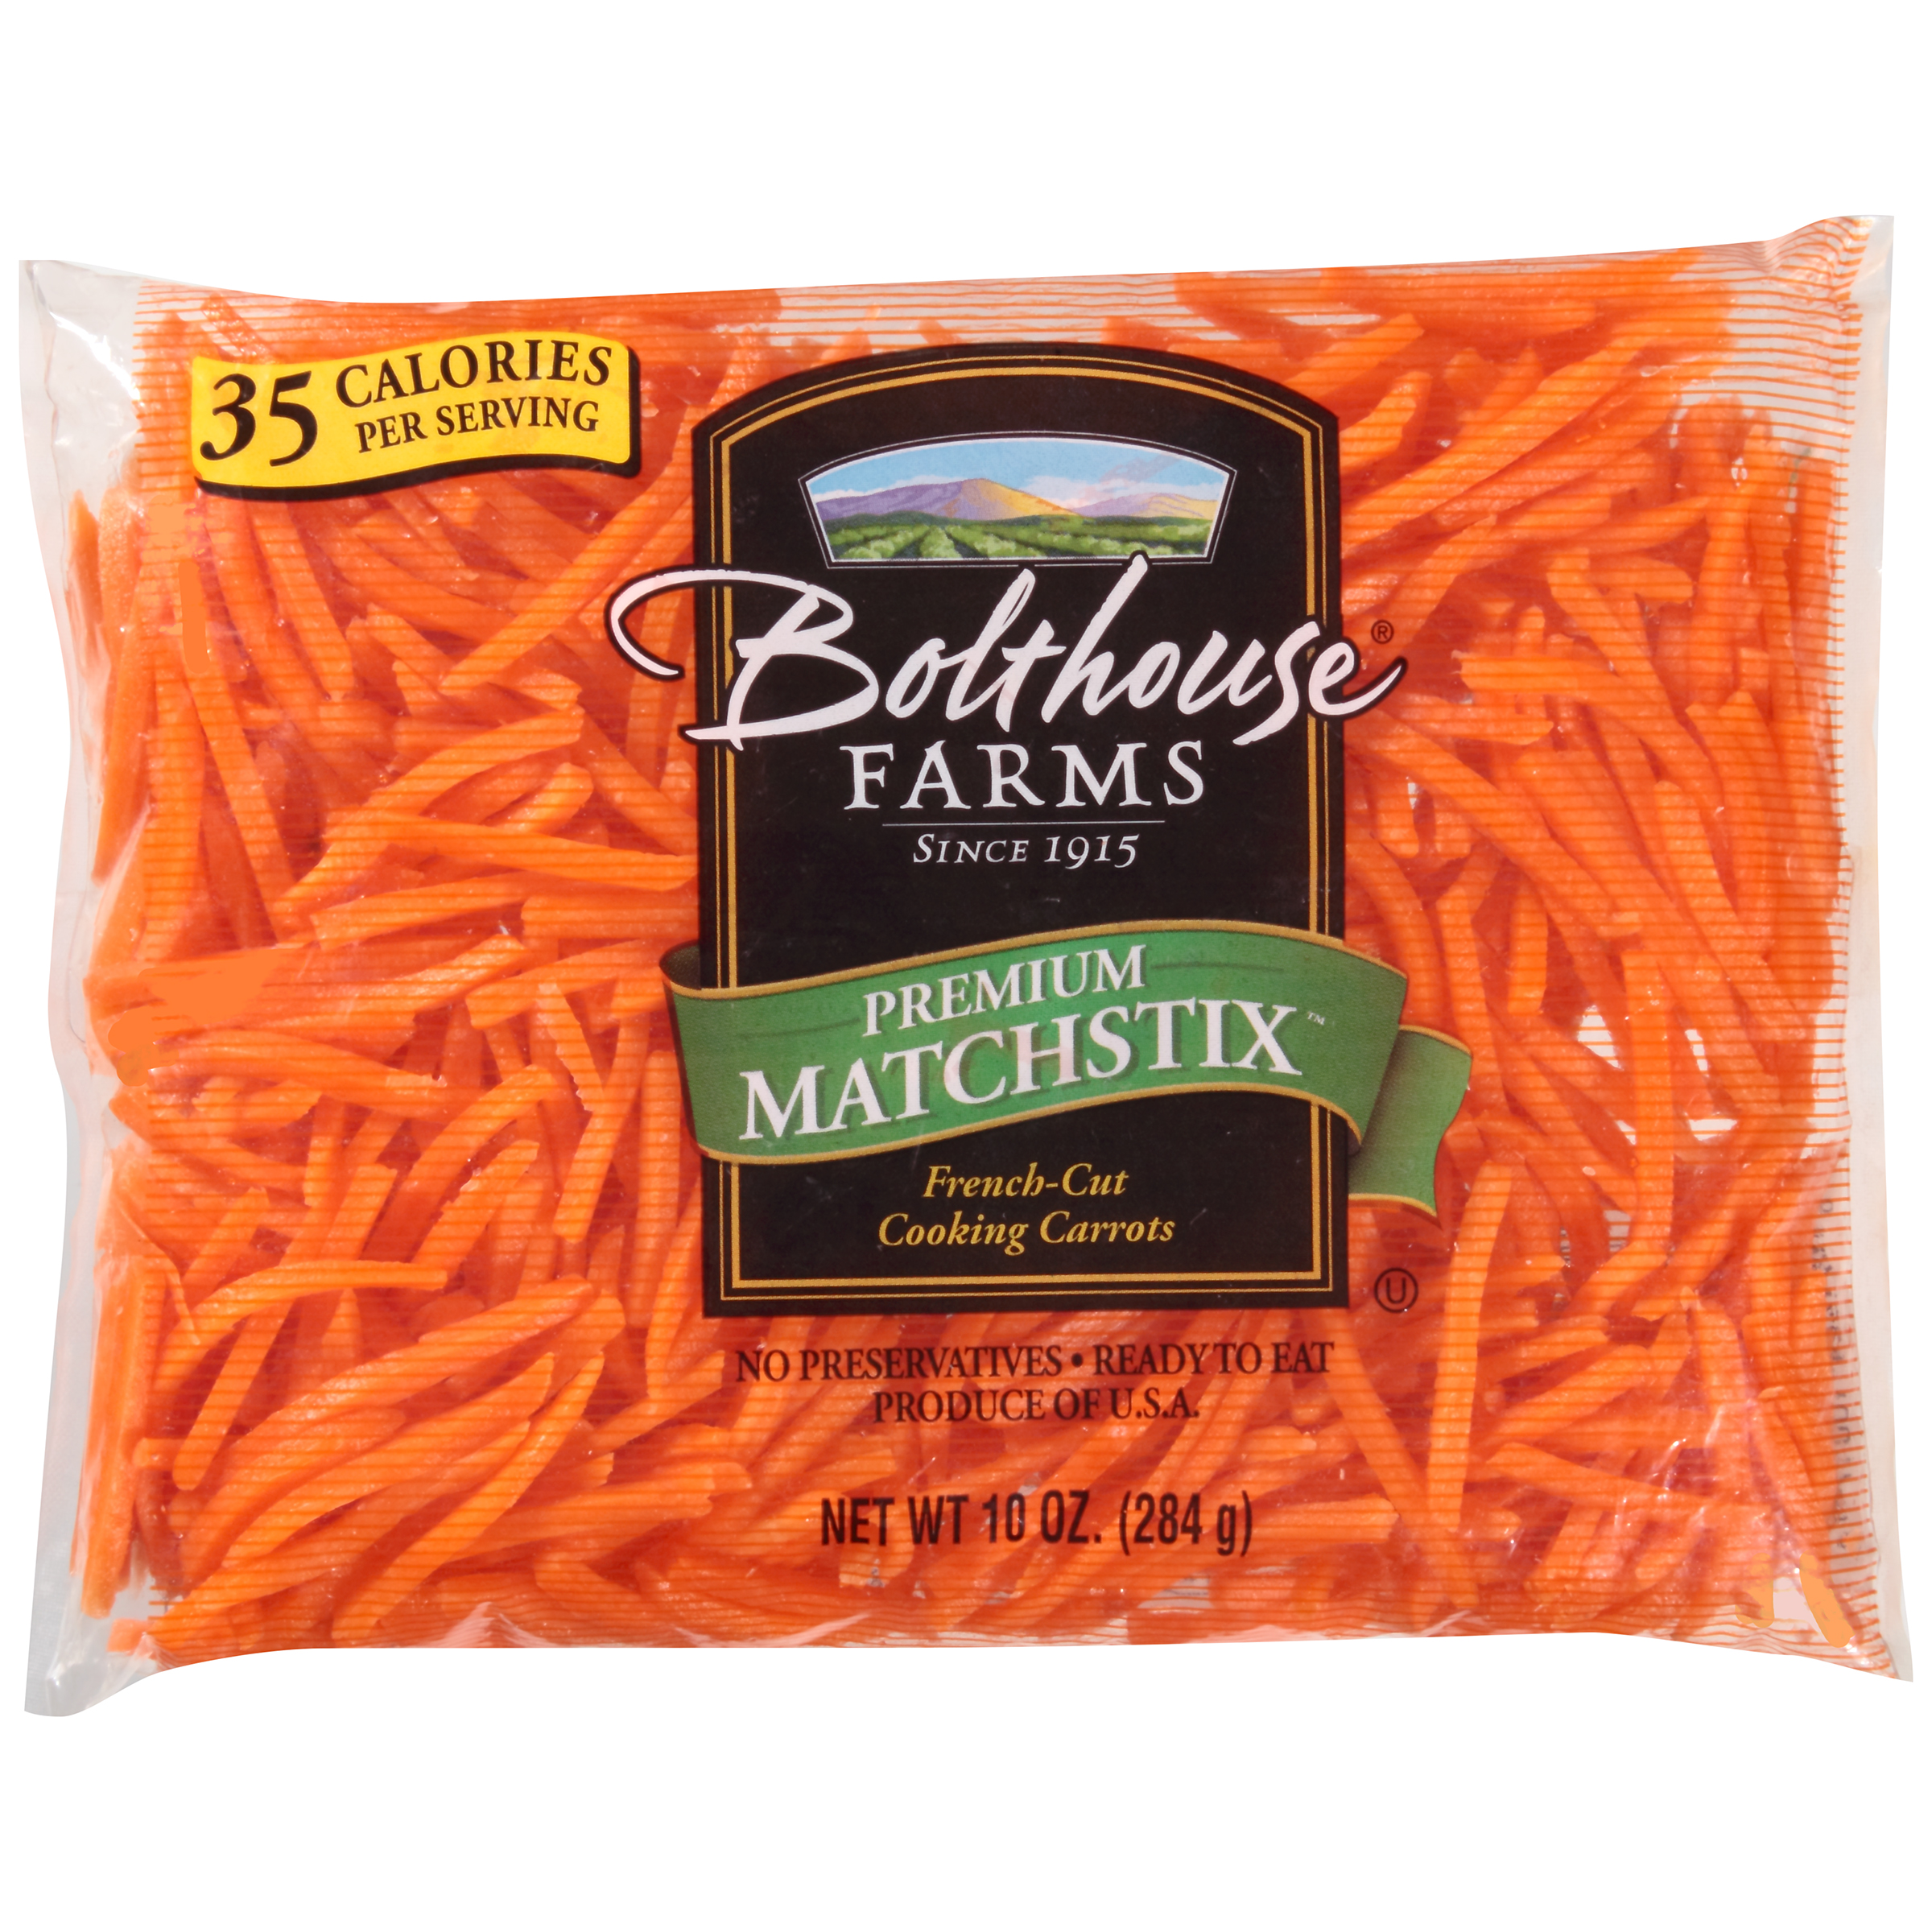 Bolthouse Farms Matchstix Carrots, 10 oz Bag